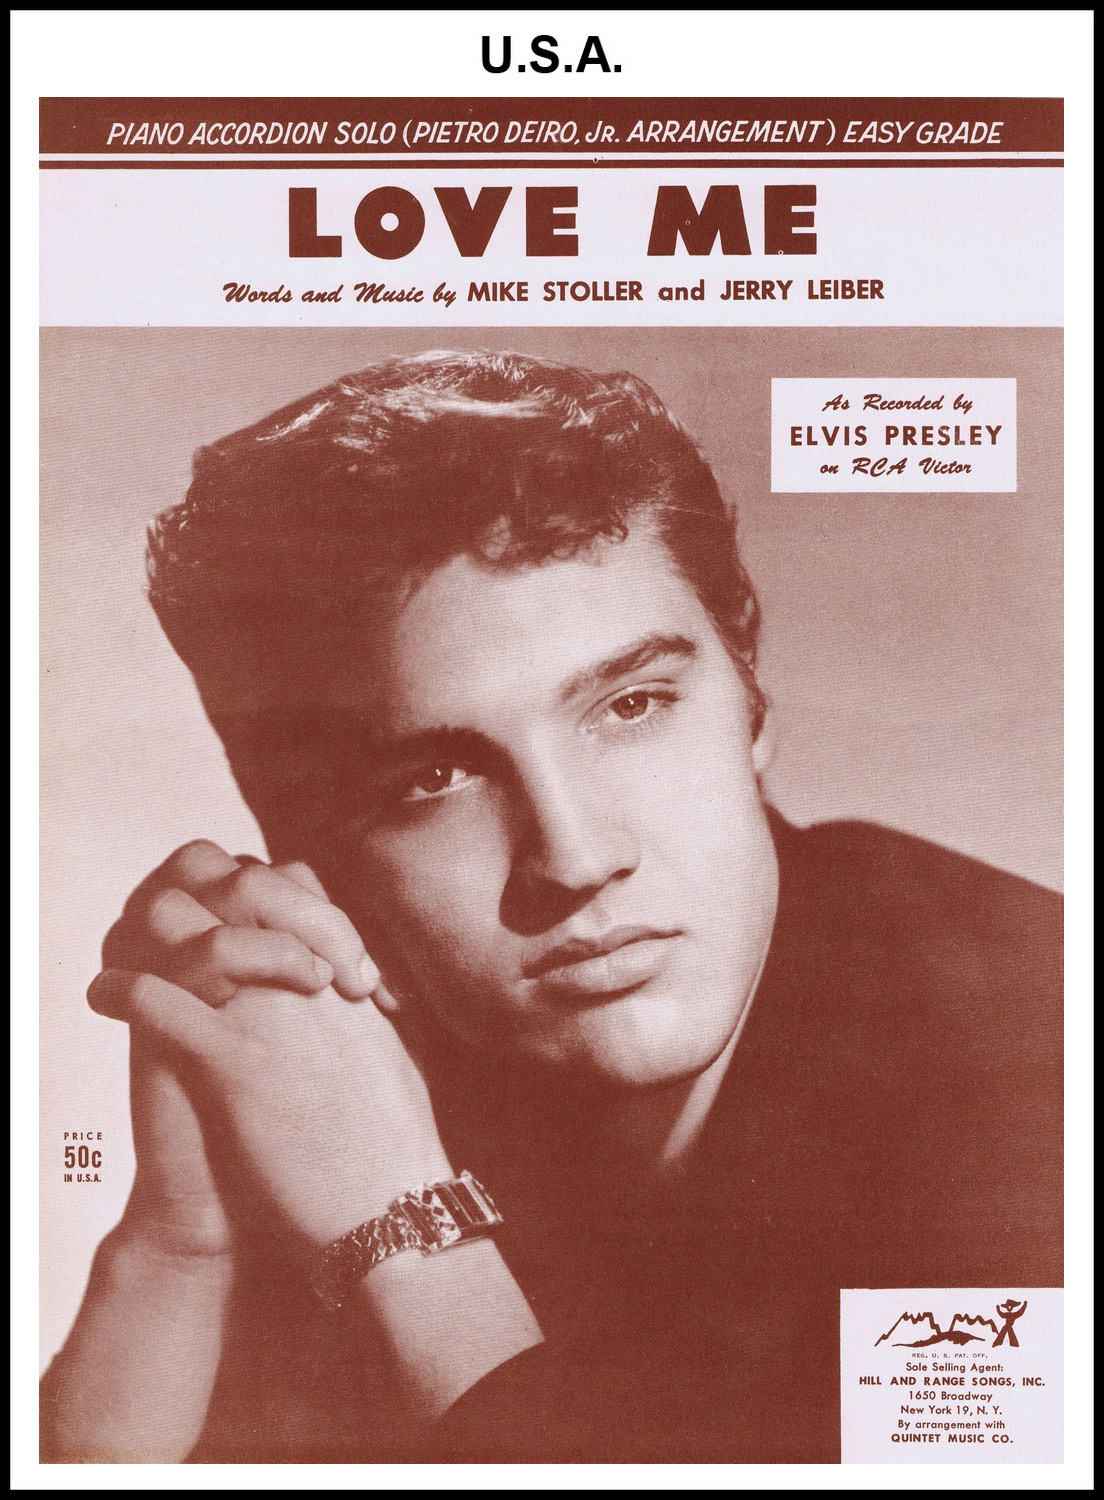 1956 - Love Me - Piano (USA 50c) (CHRIS GILES COLLECTION)